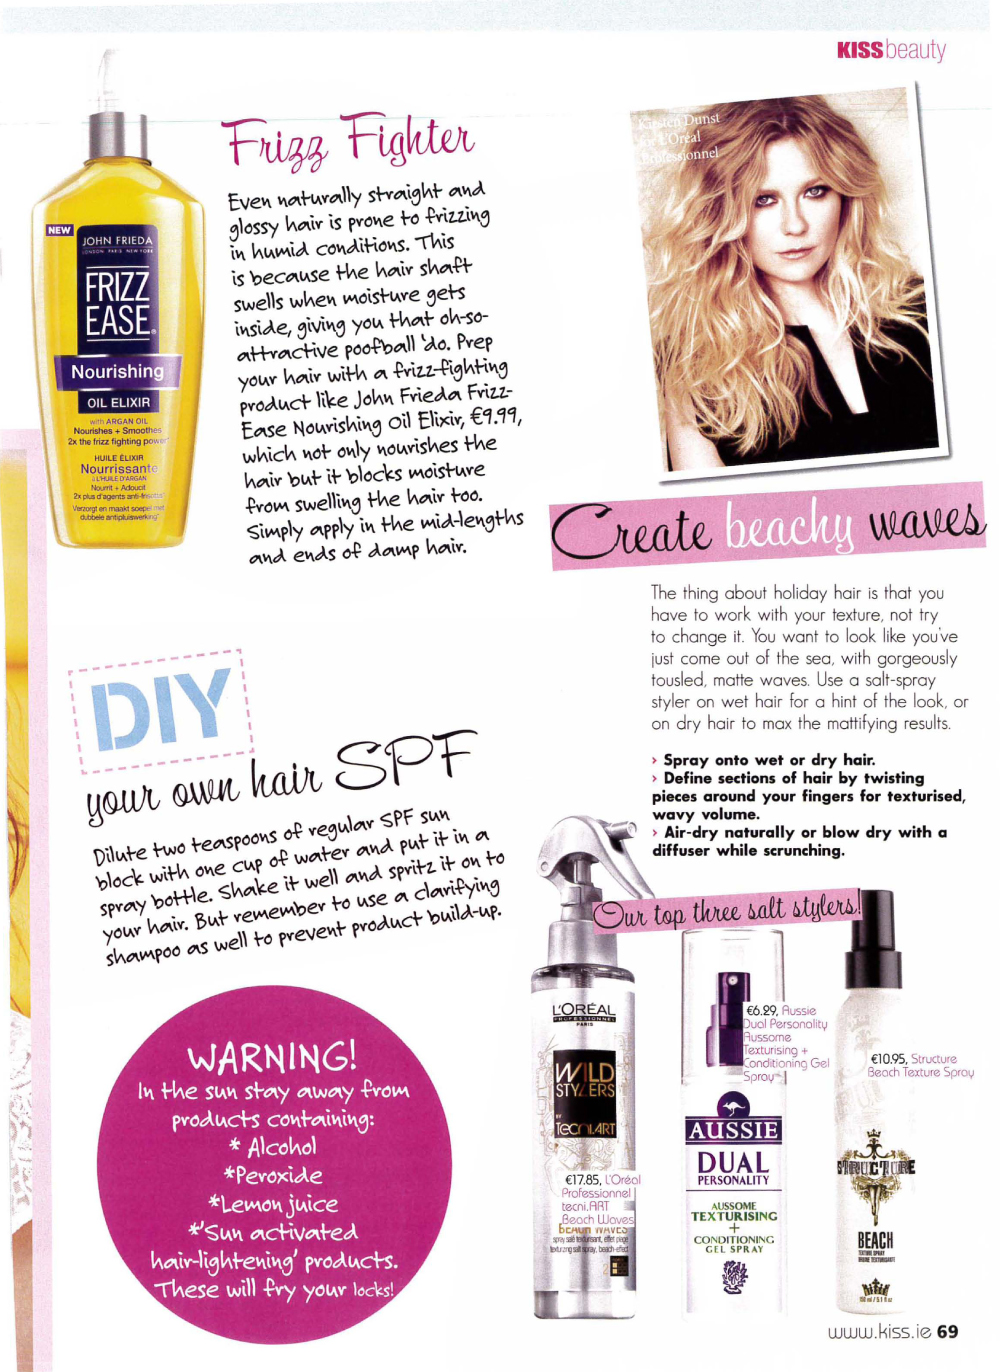 Kiss Magazine Summer Hair SOS with tips from Jonathan Soons-2